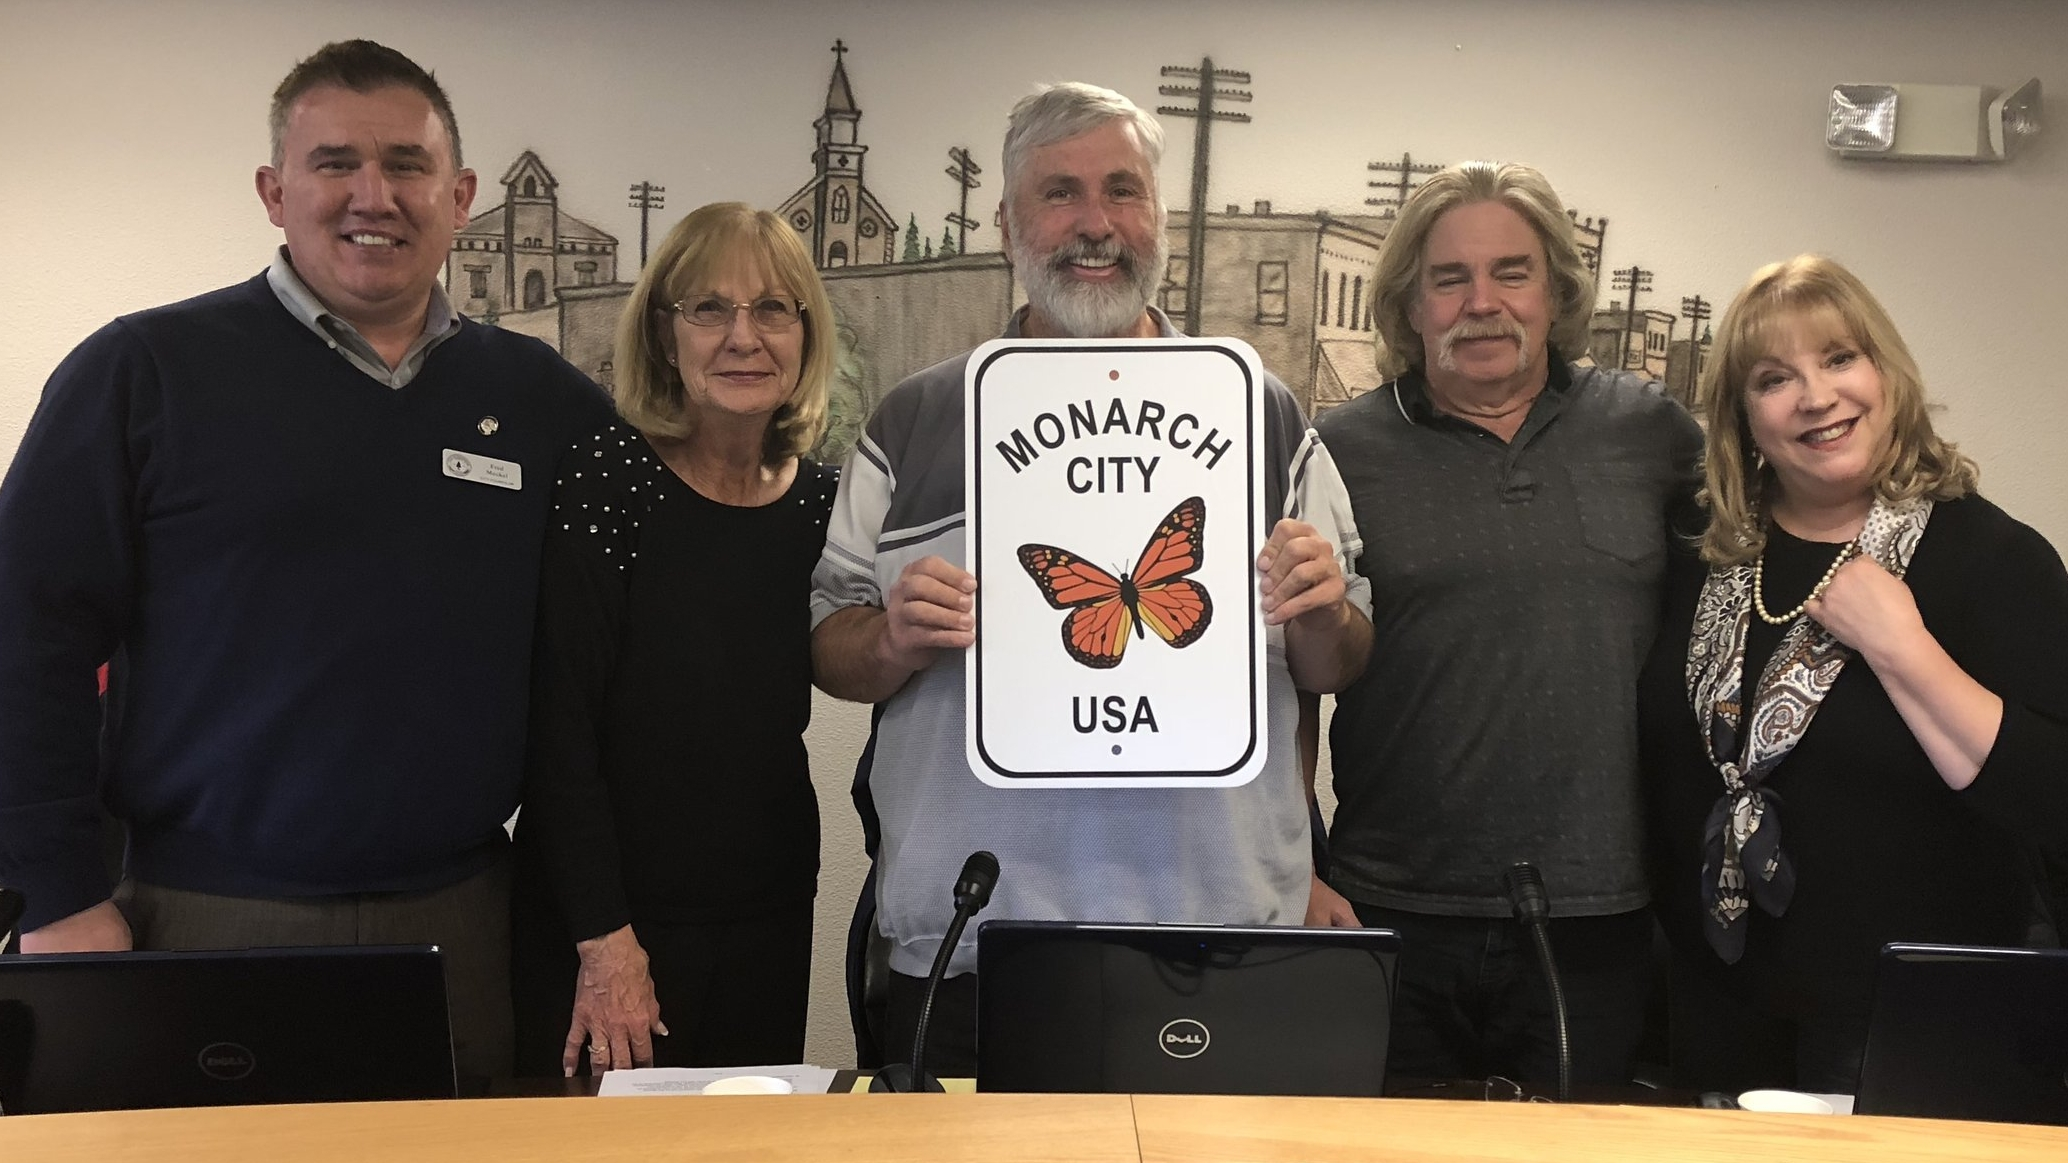 Leaders of the City of Rathdrum, the first and only member of Monarch City USA in the state of Idaho posed with their new sign.  Left to right: Council member Fred Meckel, Council Member Paula Laws, Rathdrum Mayor Vic Holmes, Council Member Darrell Rickard, Council Member Debbie Holmes